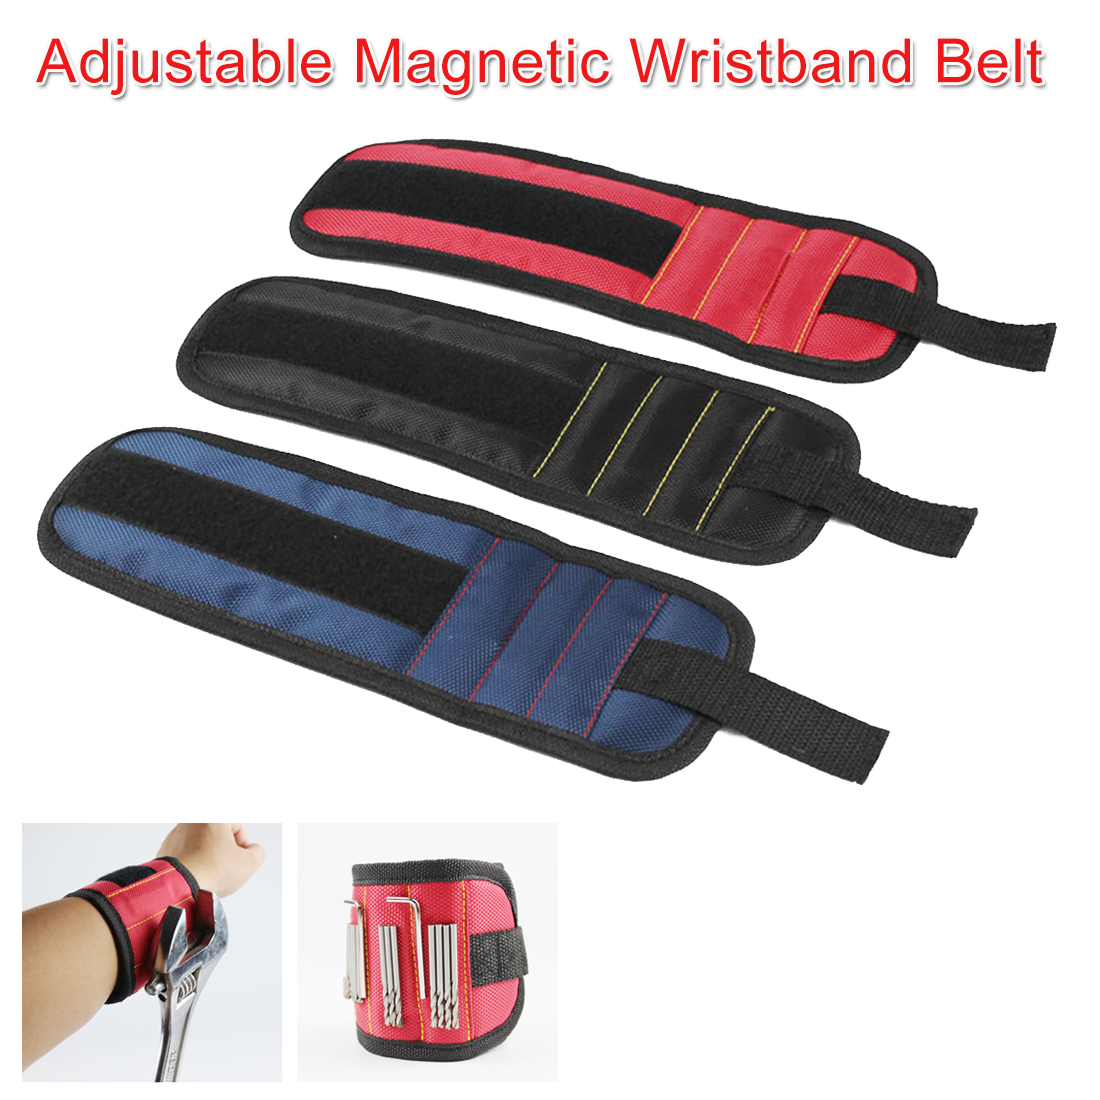 Strong Magnet Wristband Tool Adjustable Tool Wrist Bands For Screws Nails Nuts Bolts Hand Free Drill Bit Holder For Home Repair